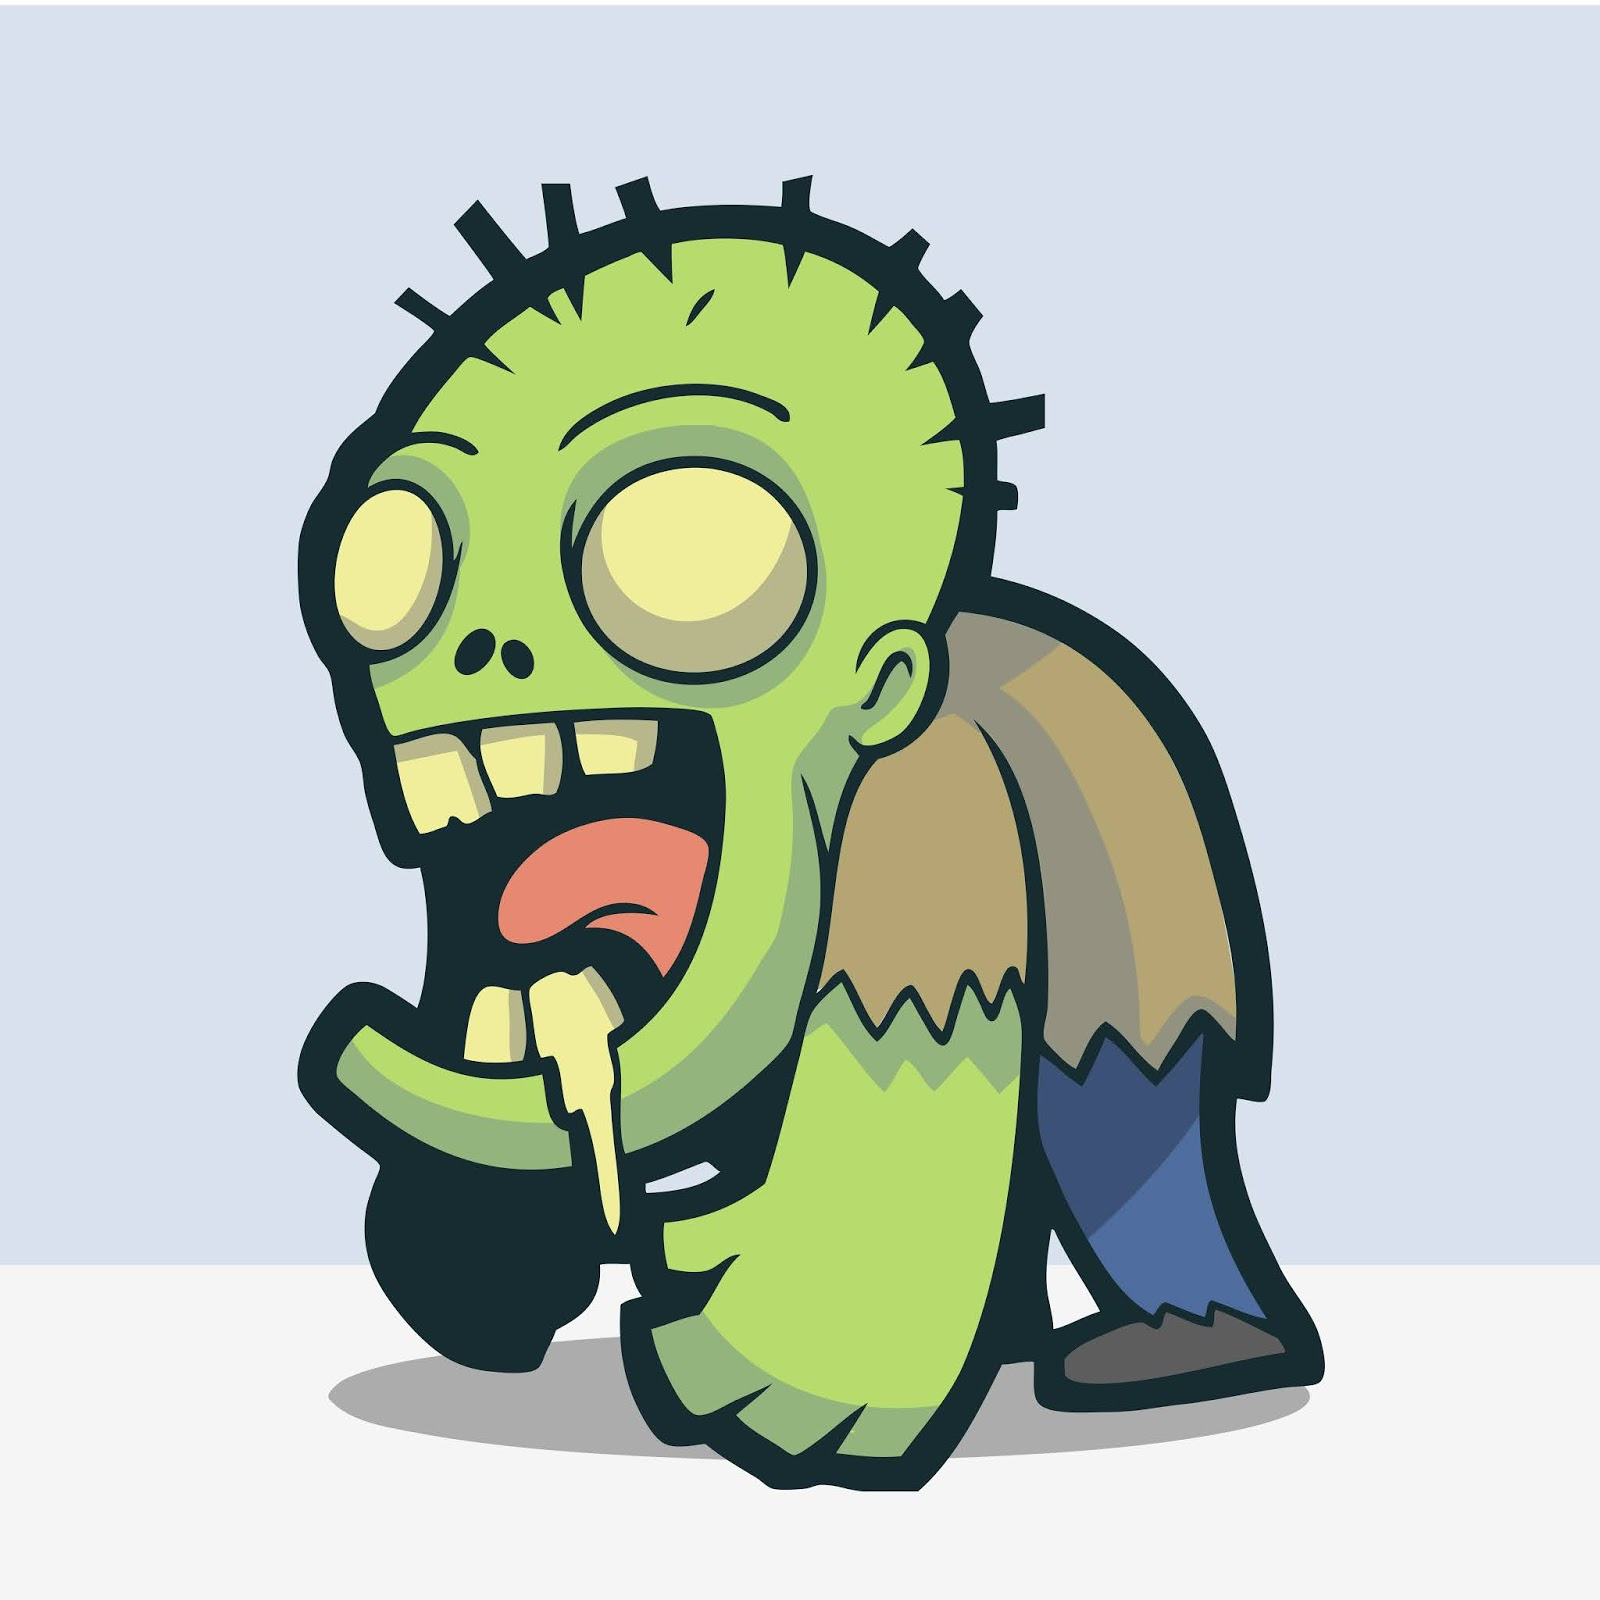 Adorable Cute Zombie Free Download Vector CDR, AI, EPS and PNG Formats